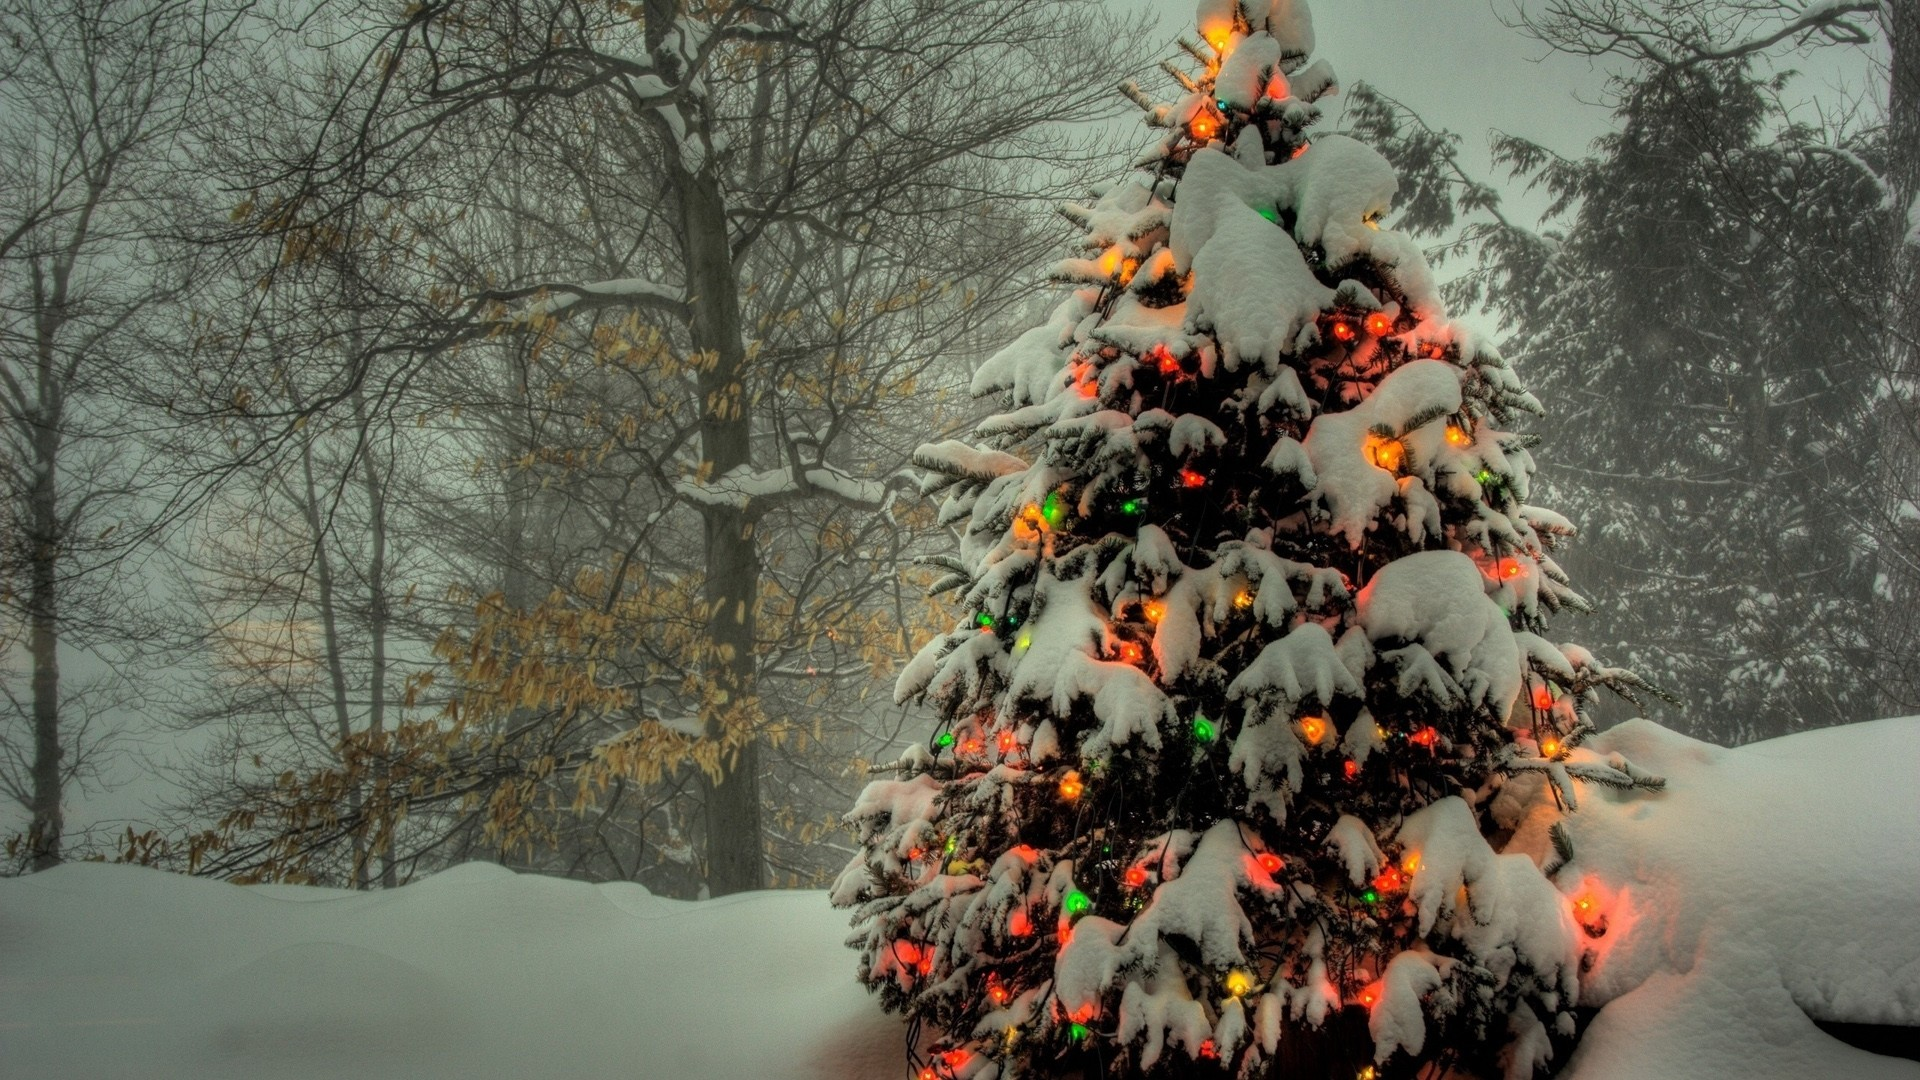 1920x1080 Preview wallpaper christmas tree, toys, light, snow